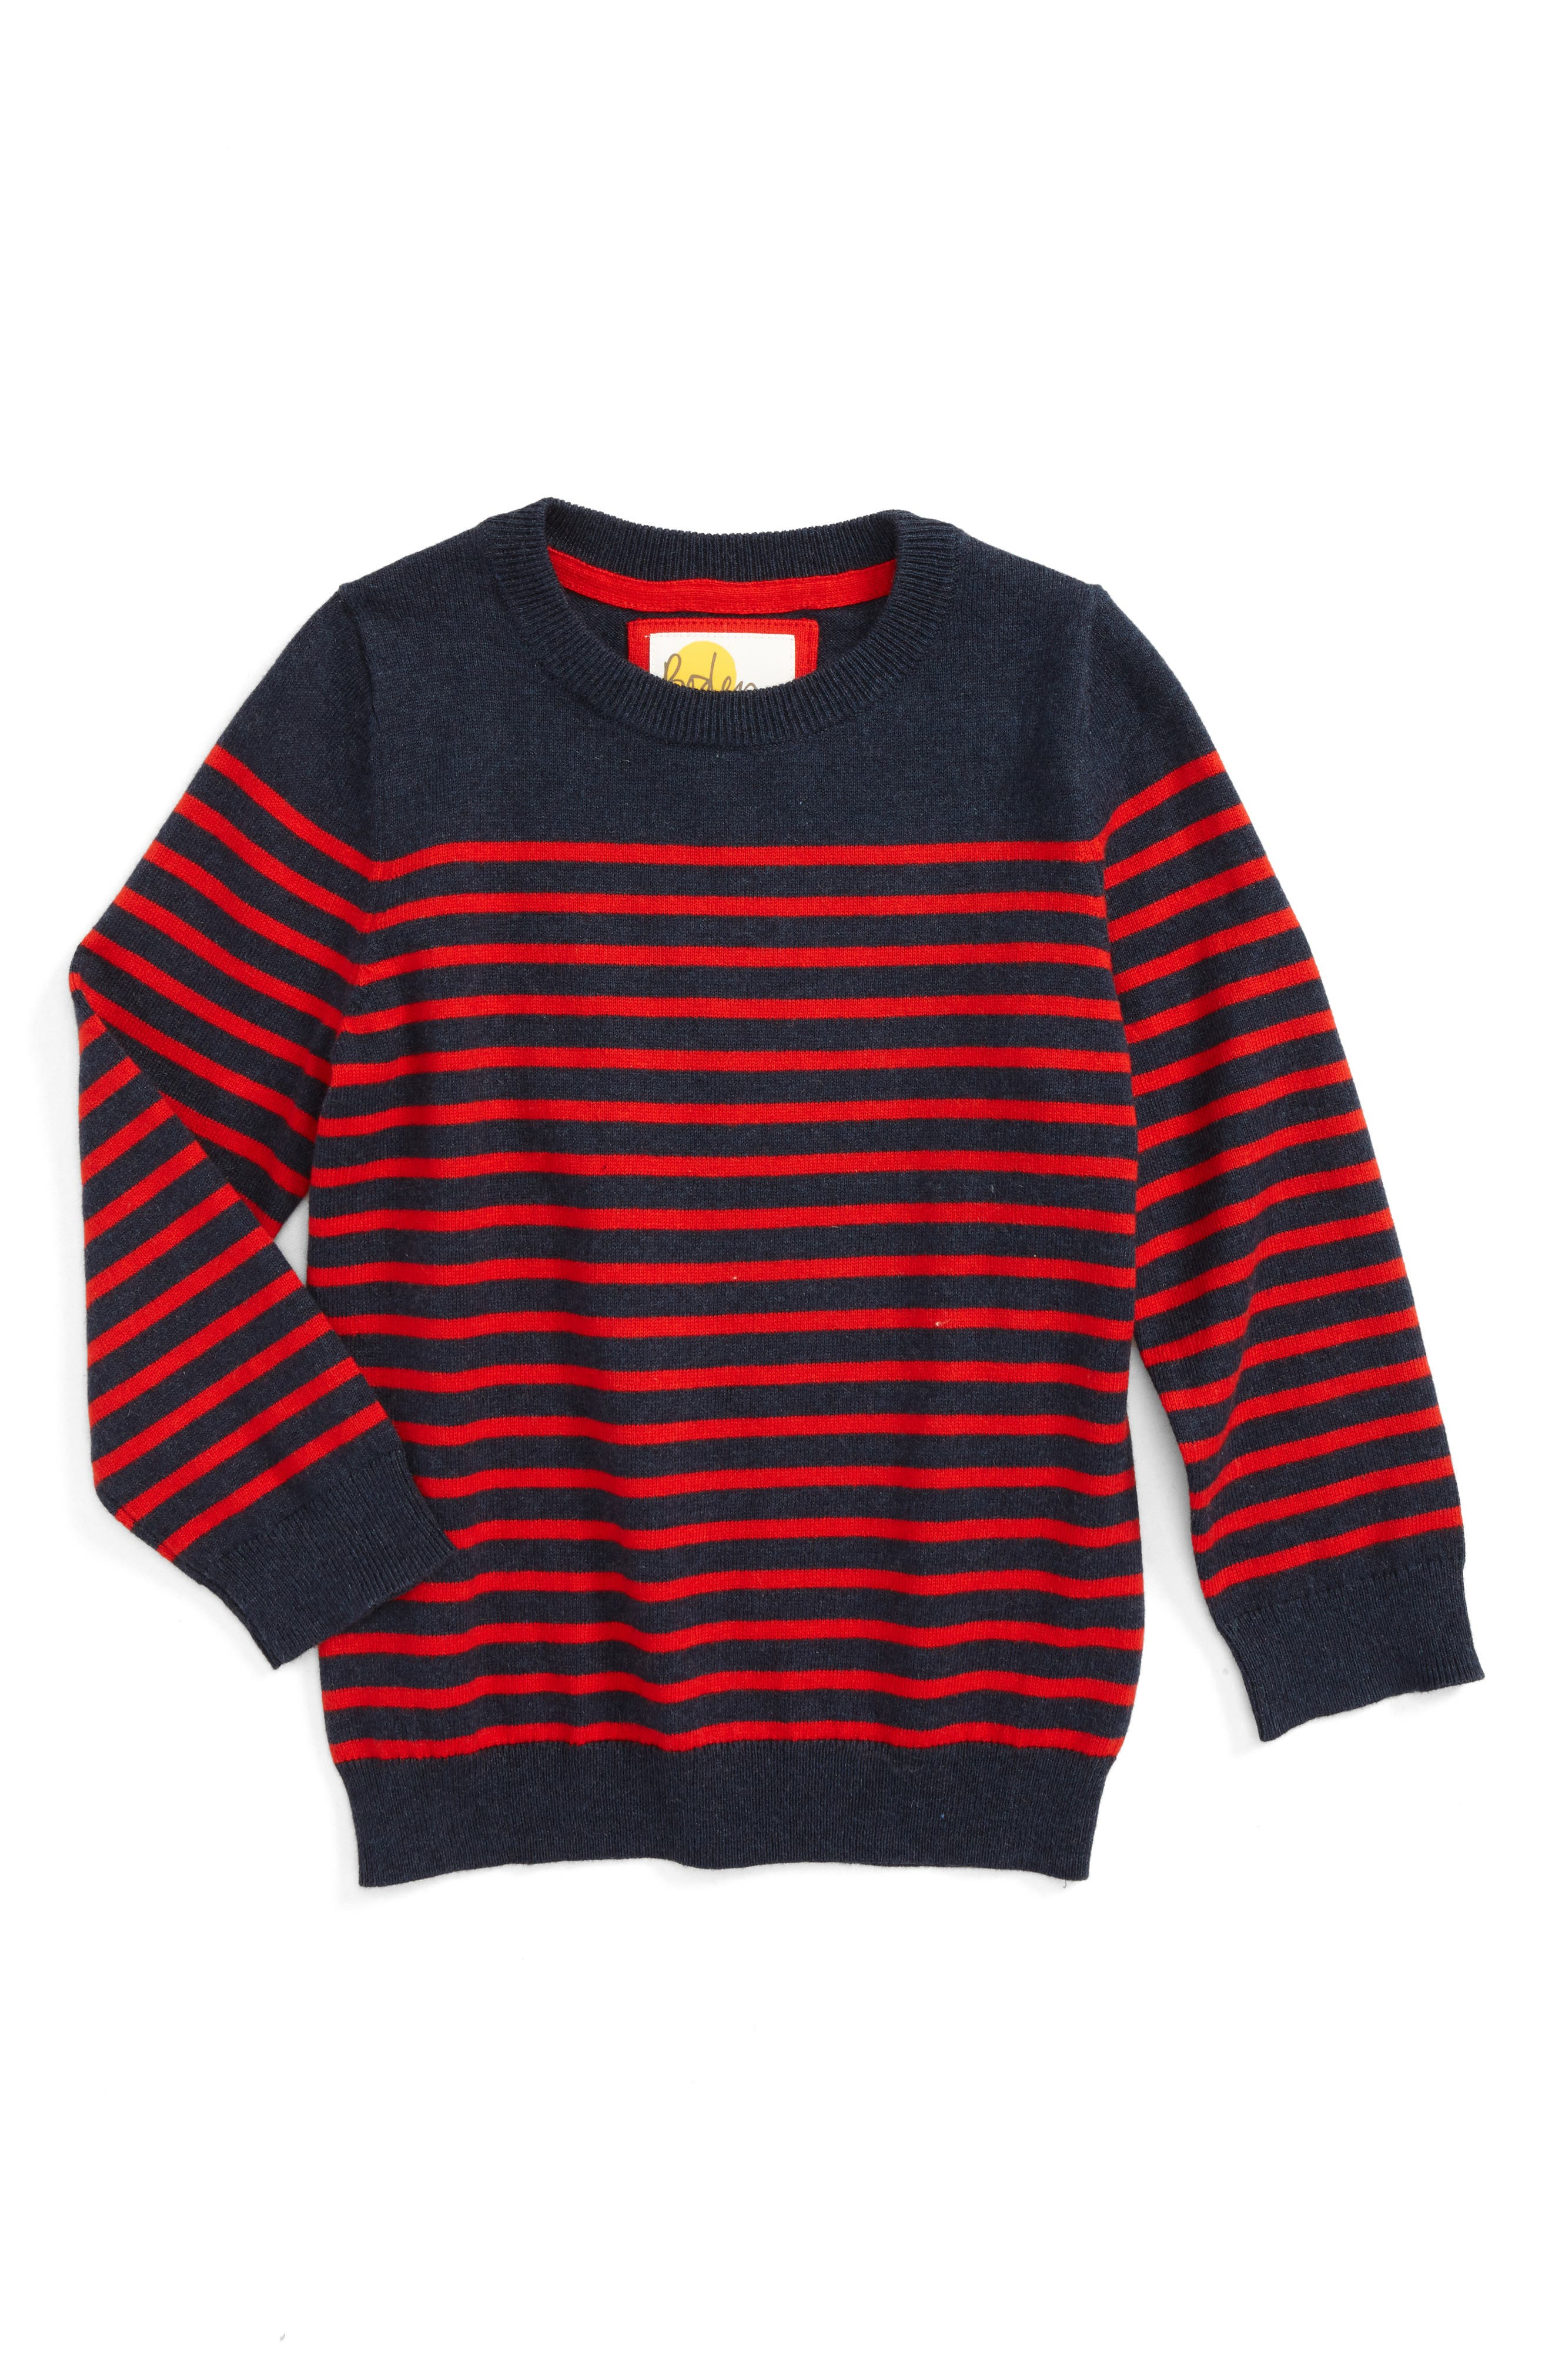 Stripe Sweater,                         Main,                         color, Navy/ Beatnik Red